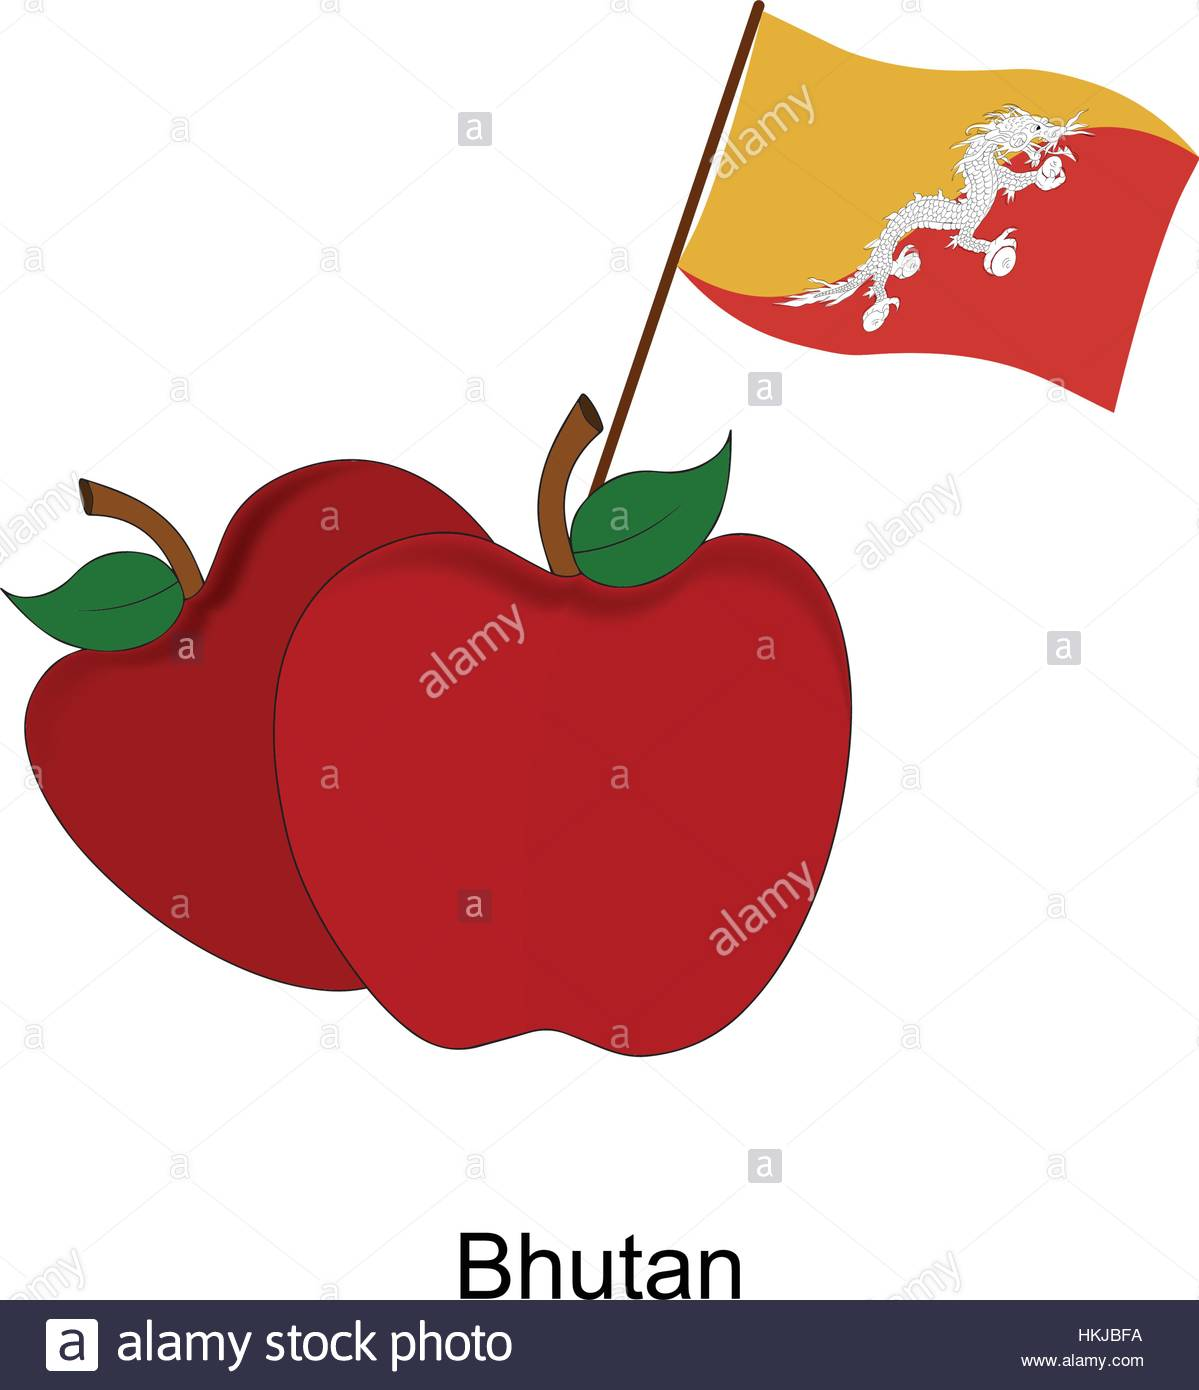 Illustration of Apple, Bhutan Flag, Apple with Bhutan Flag - Stock Vector